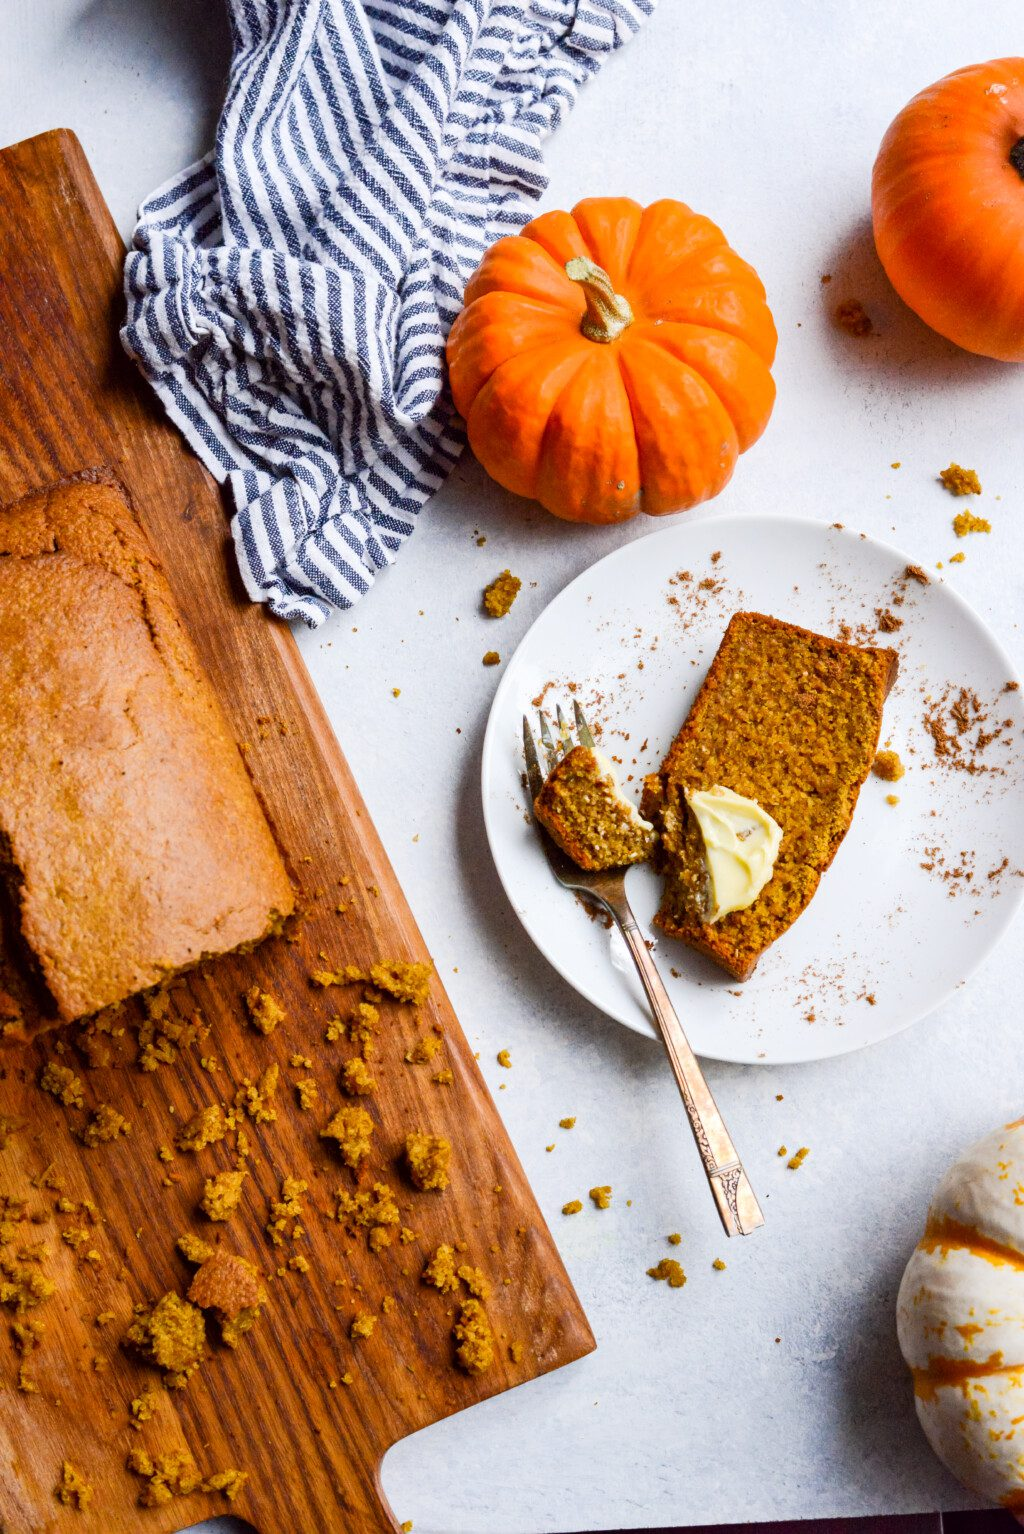 top down view of a slice of pumpkin bread on a white plate next to a loaf of bread